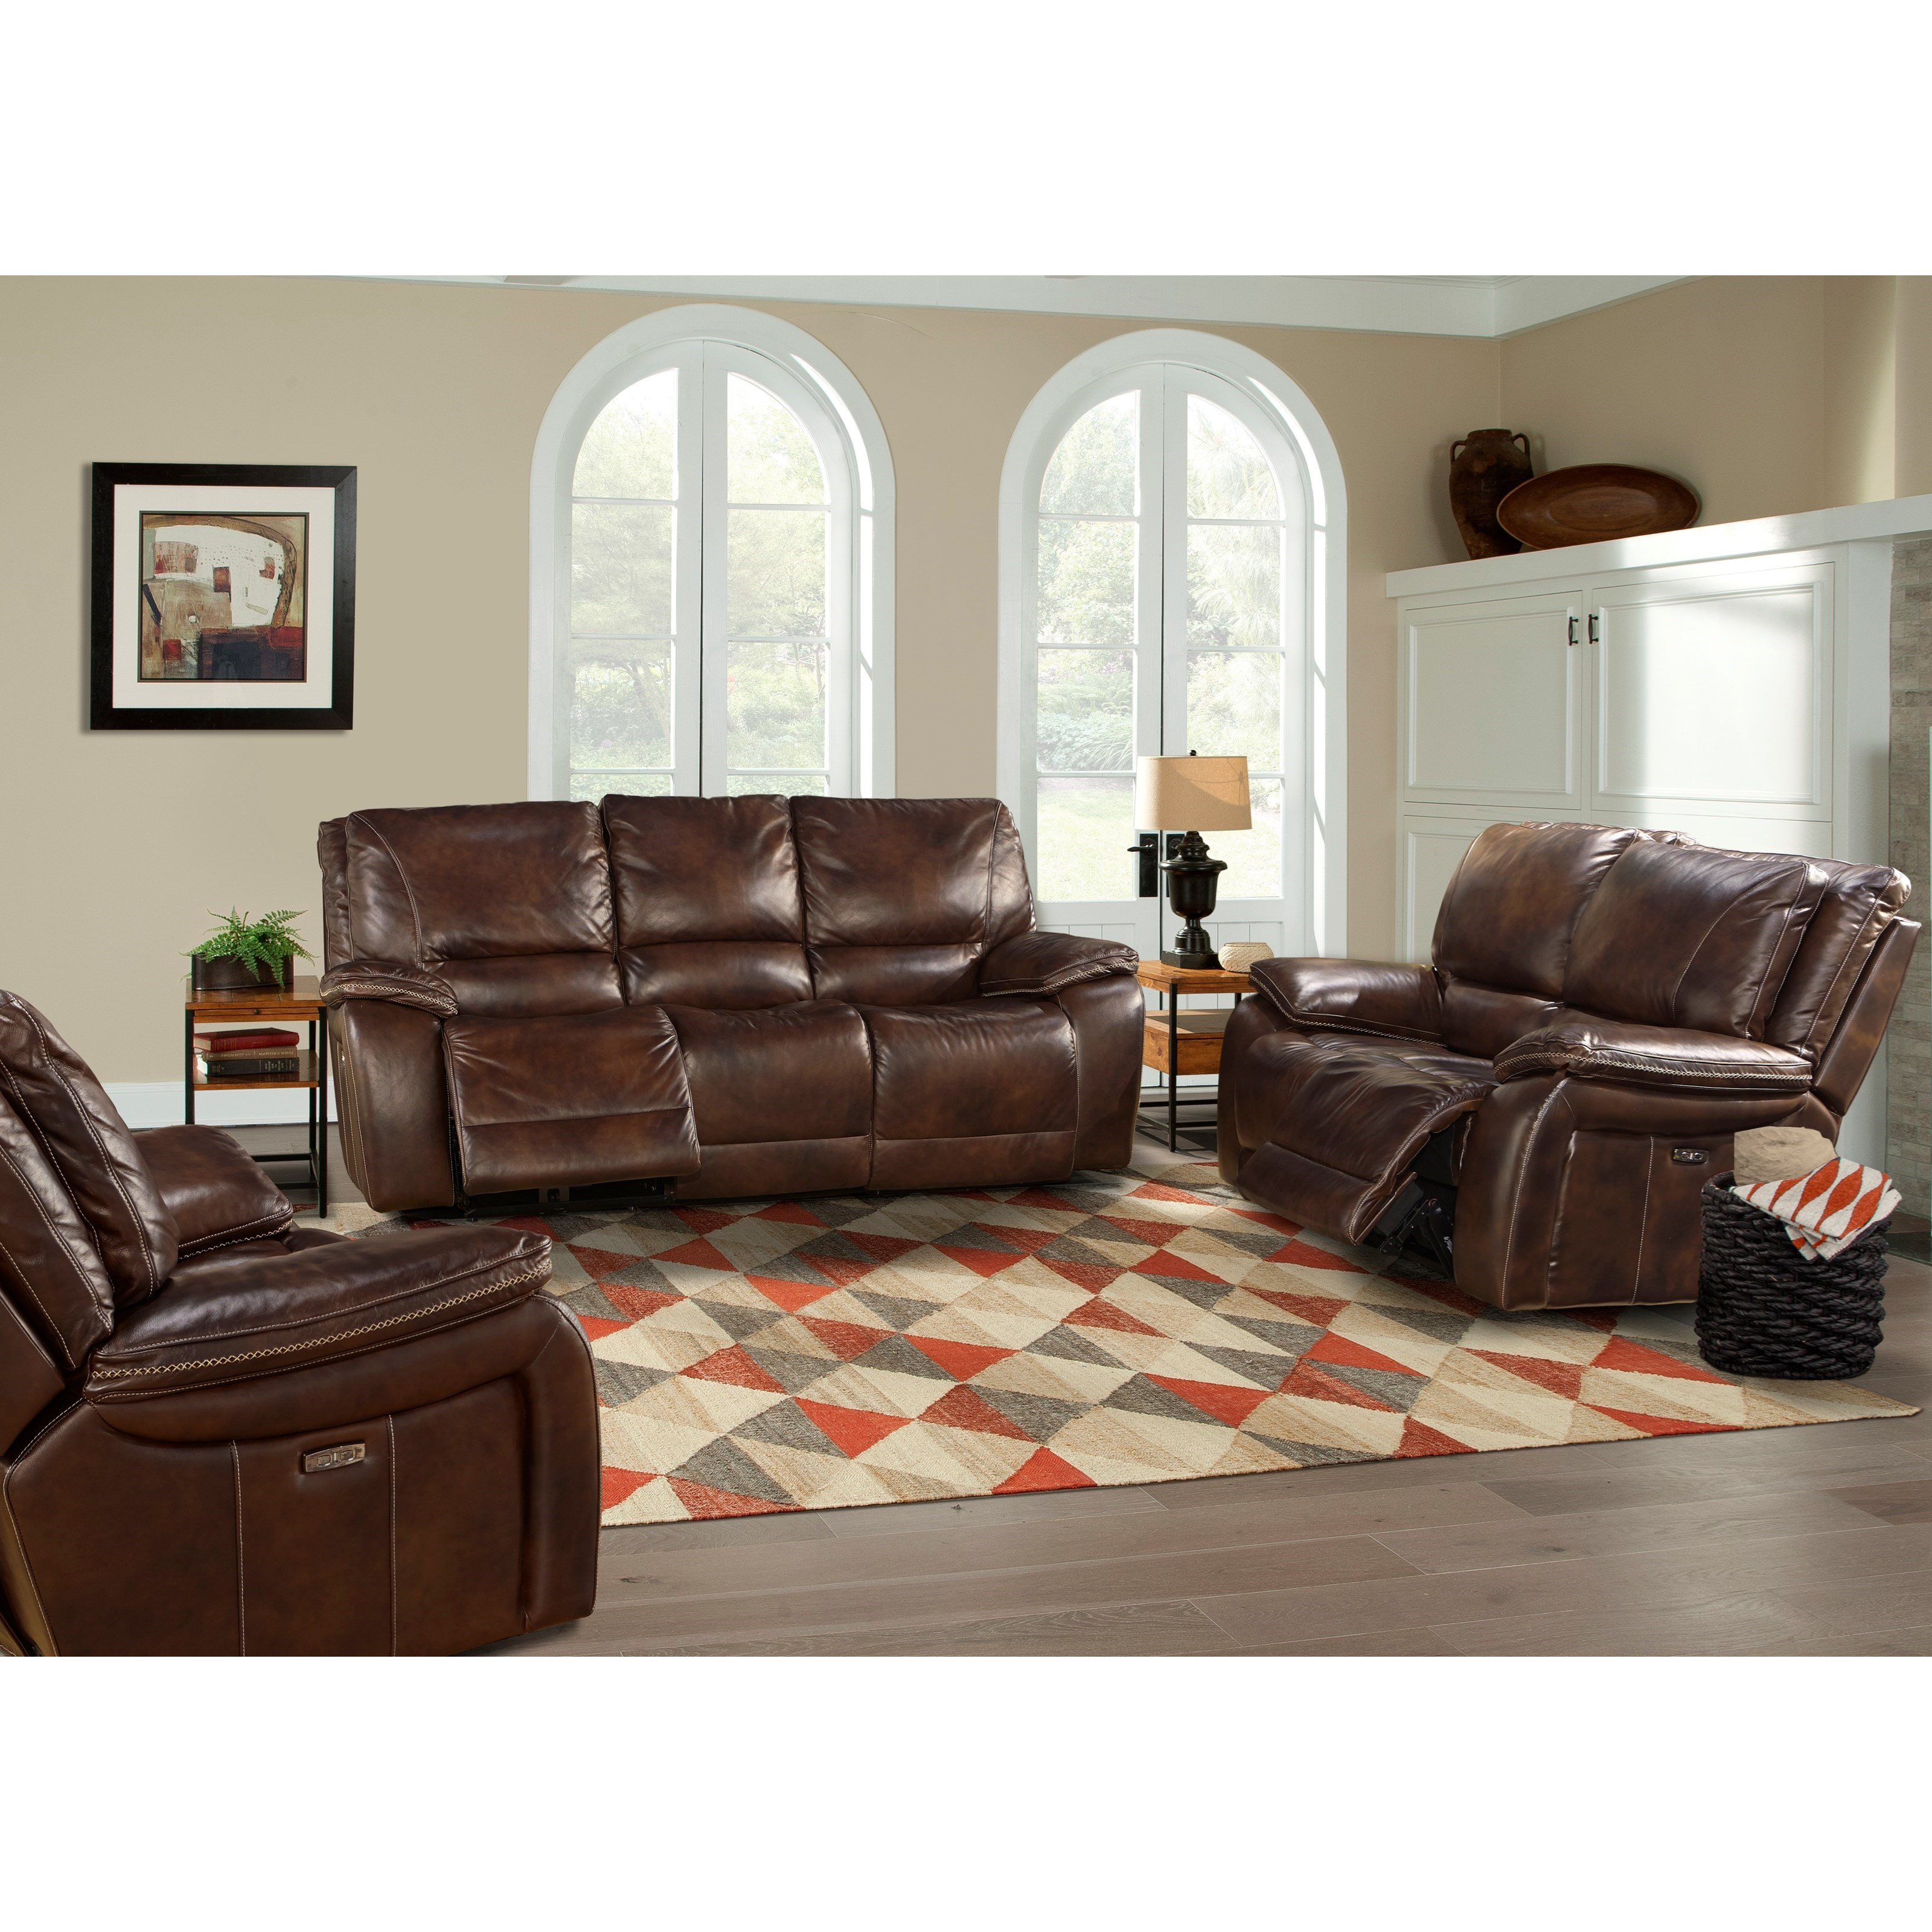 Parker living vail power reclining living room group for Living room furniture groups